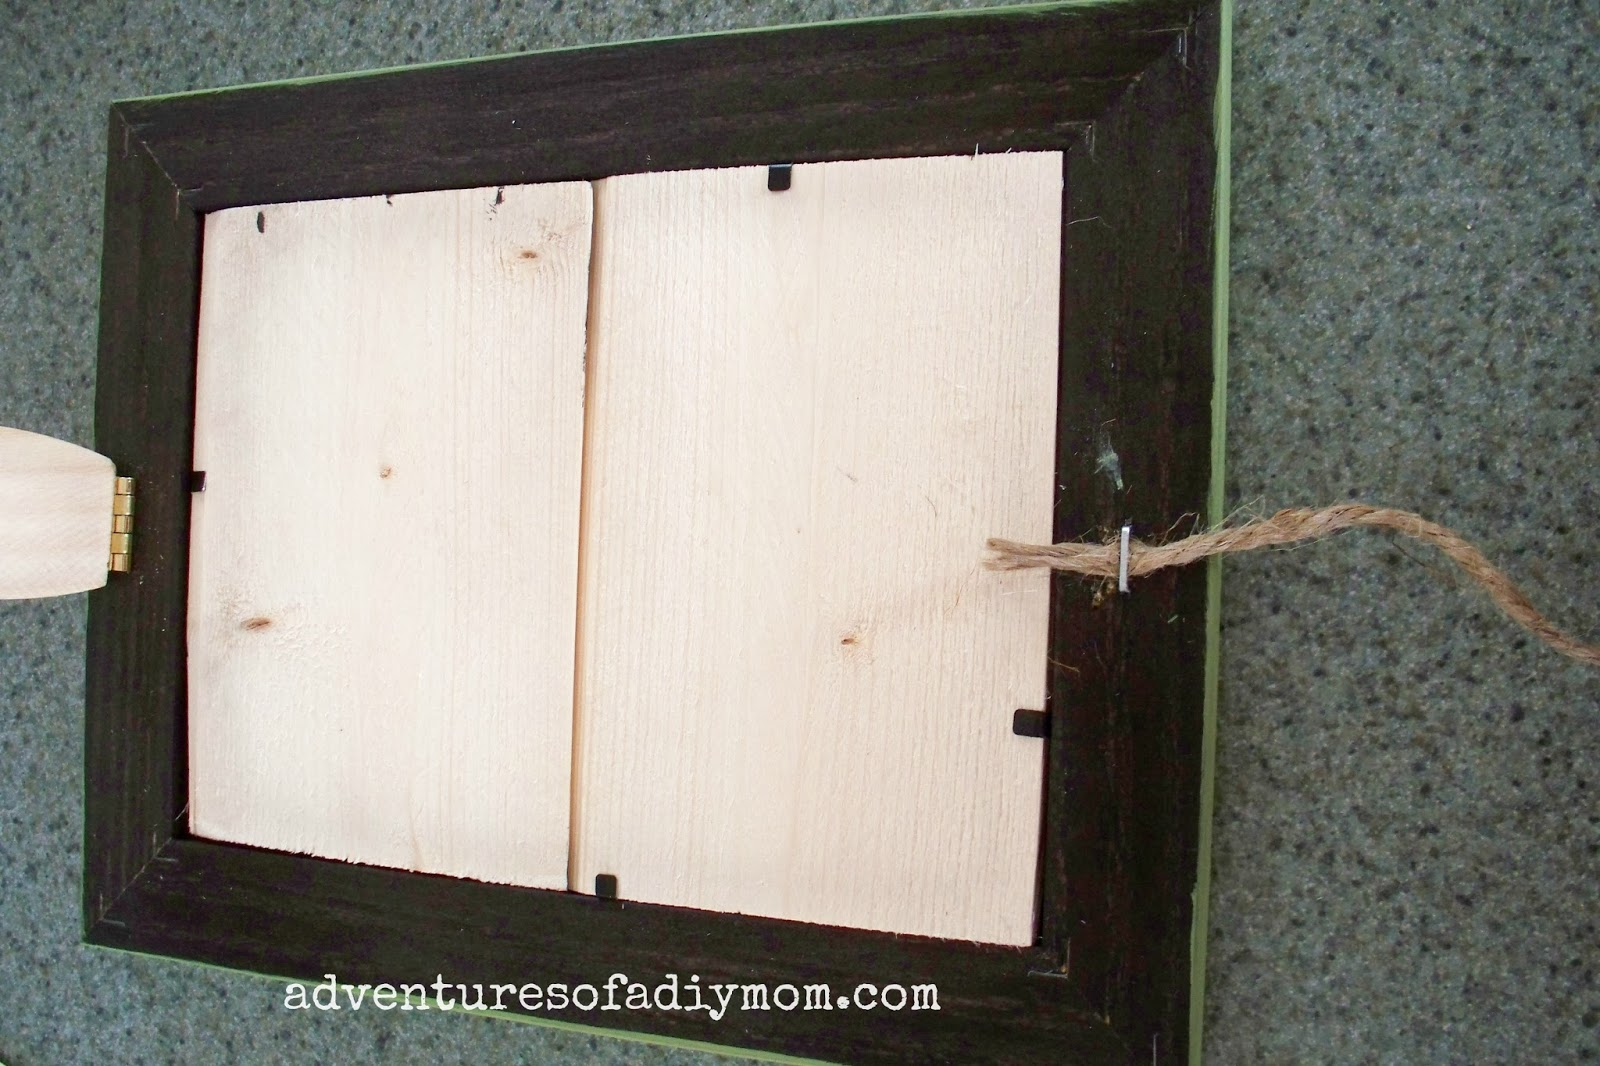 How to Make a Recipe Card Holder Frame